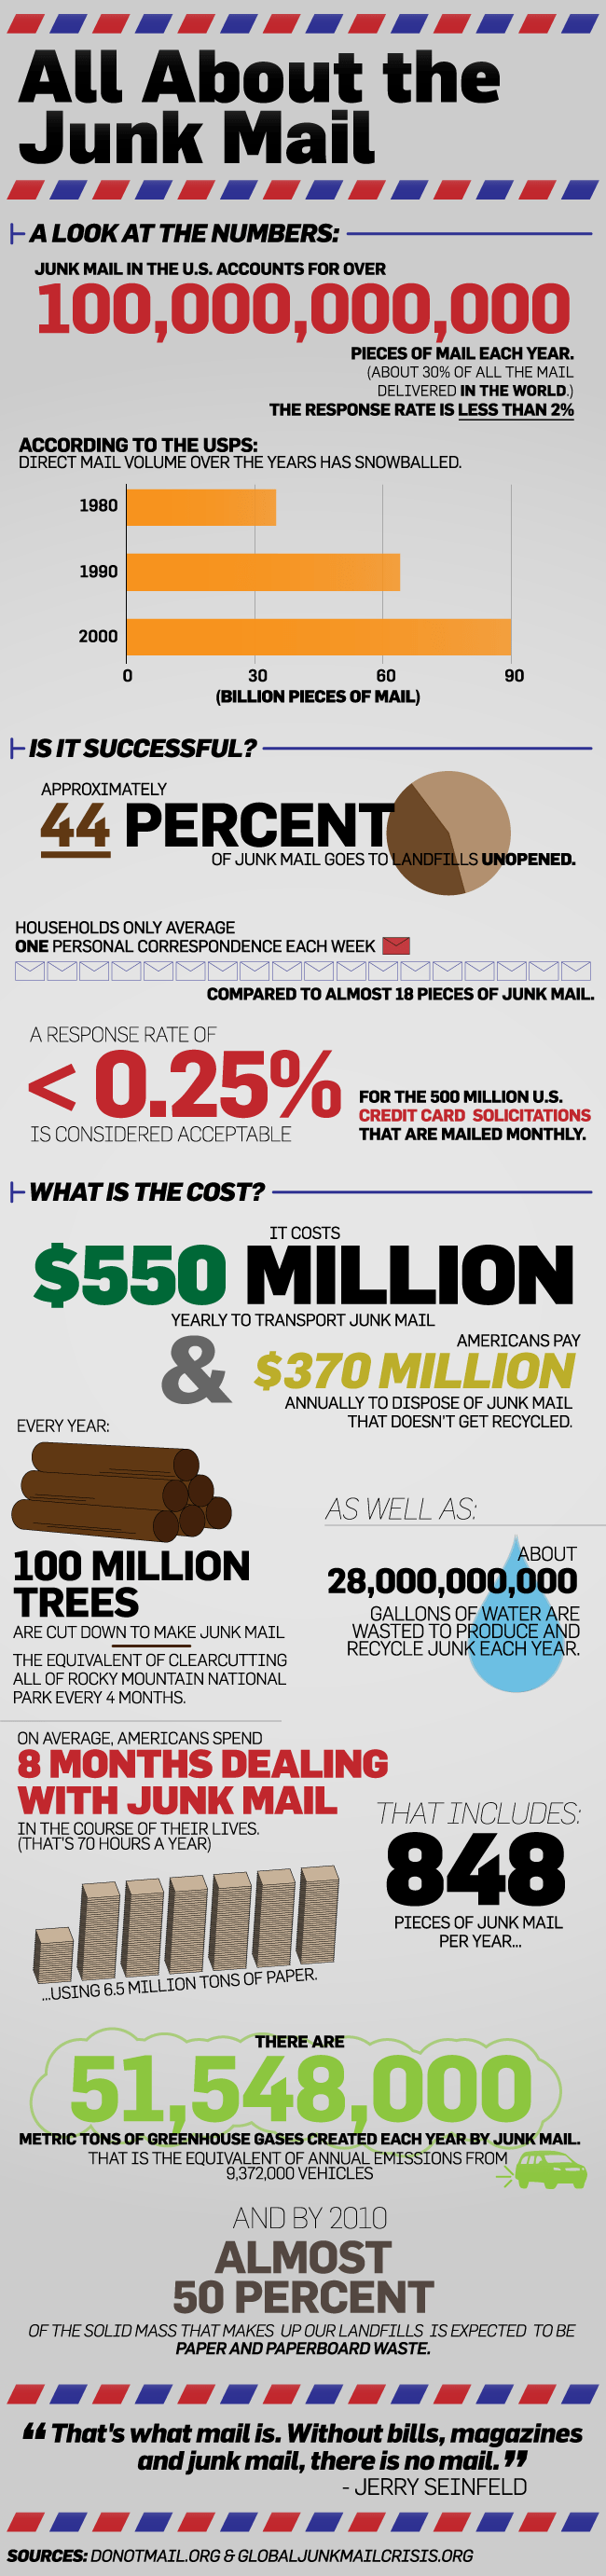 All About Junk Mail [infographic]